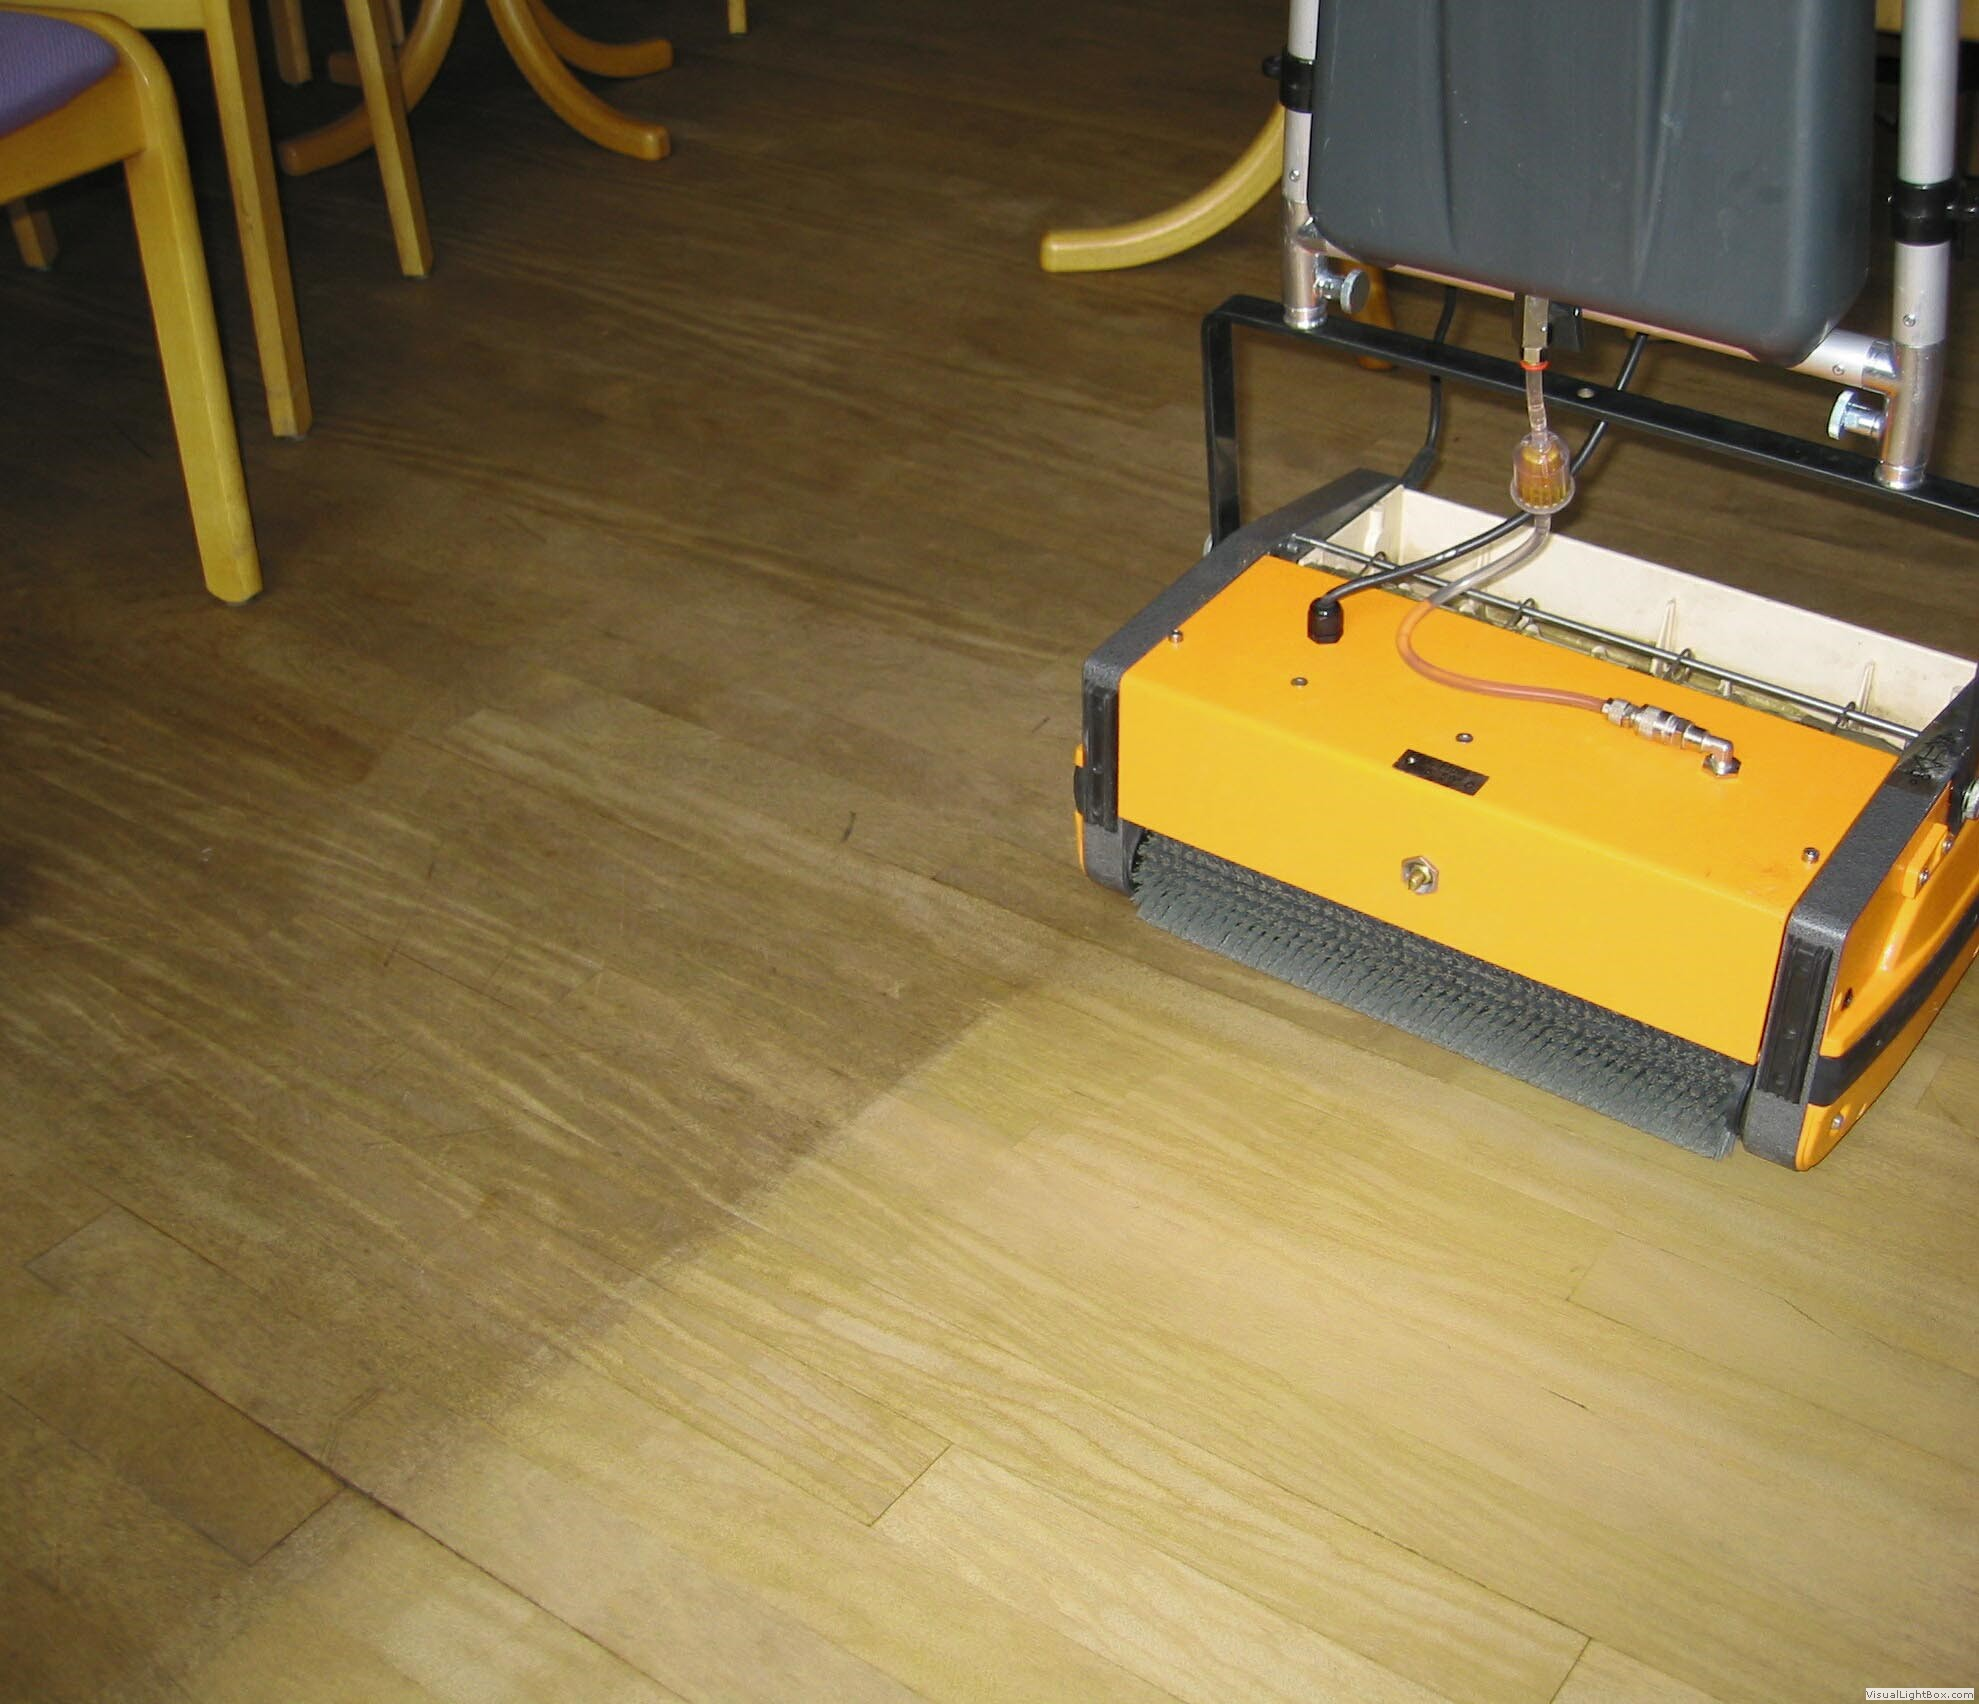 Remarkable Tile Floor Cleaner Machine Pictures Decors